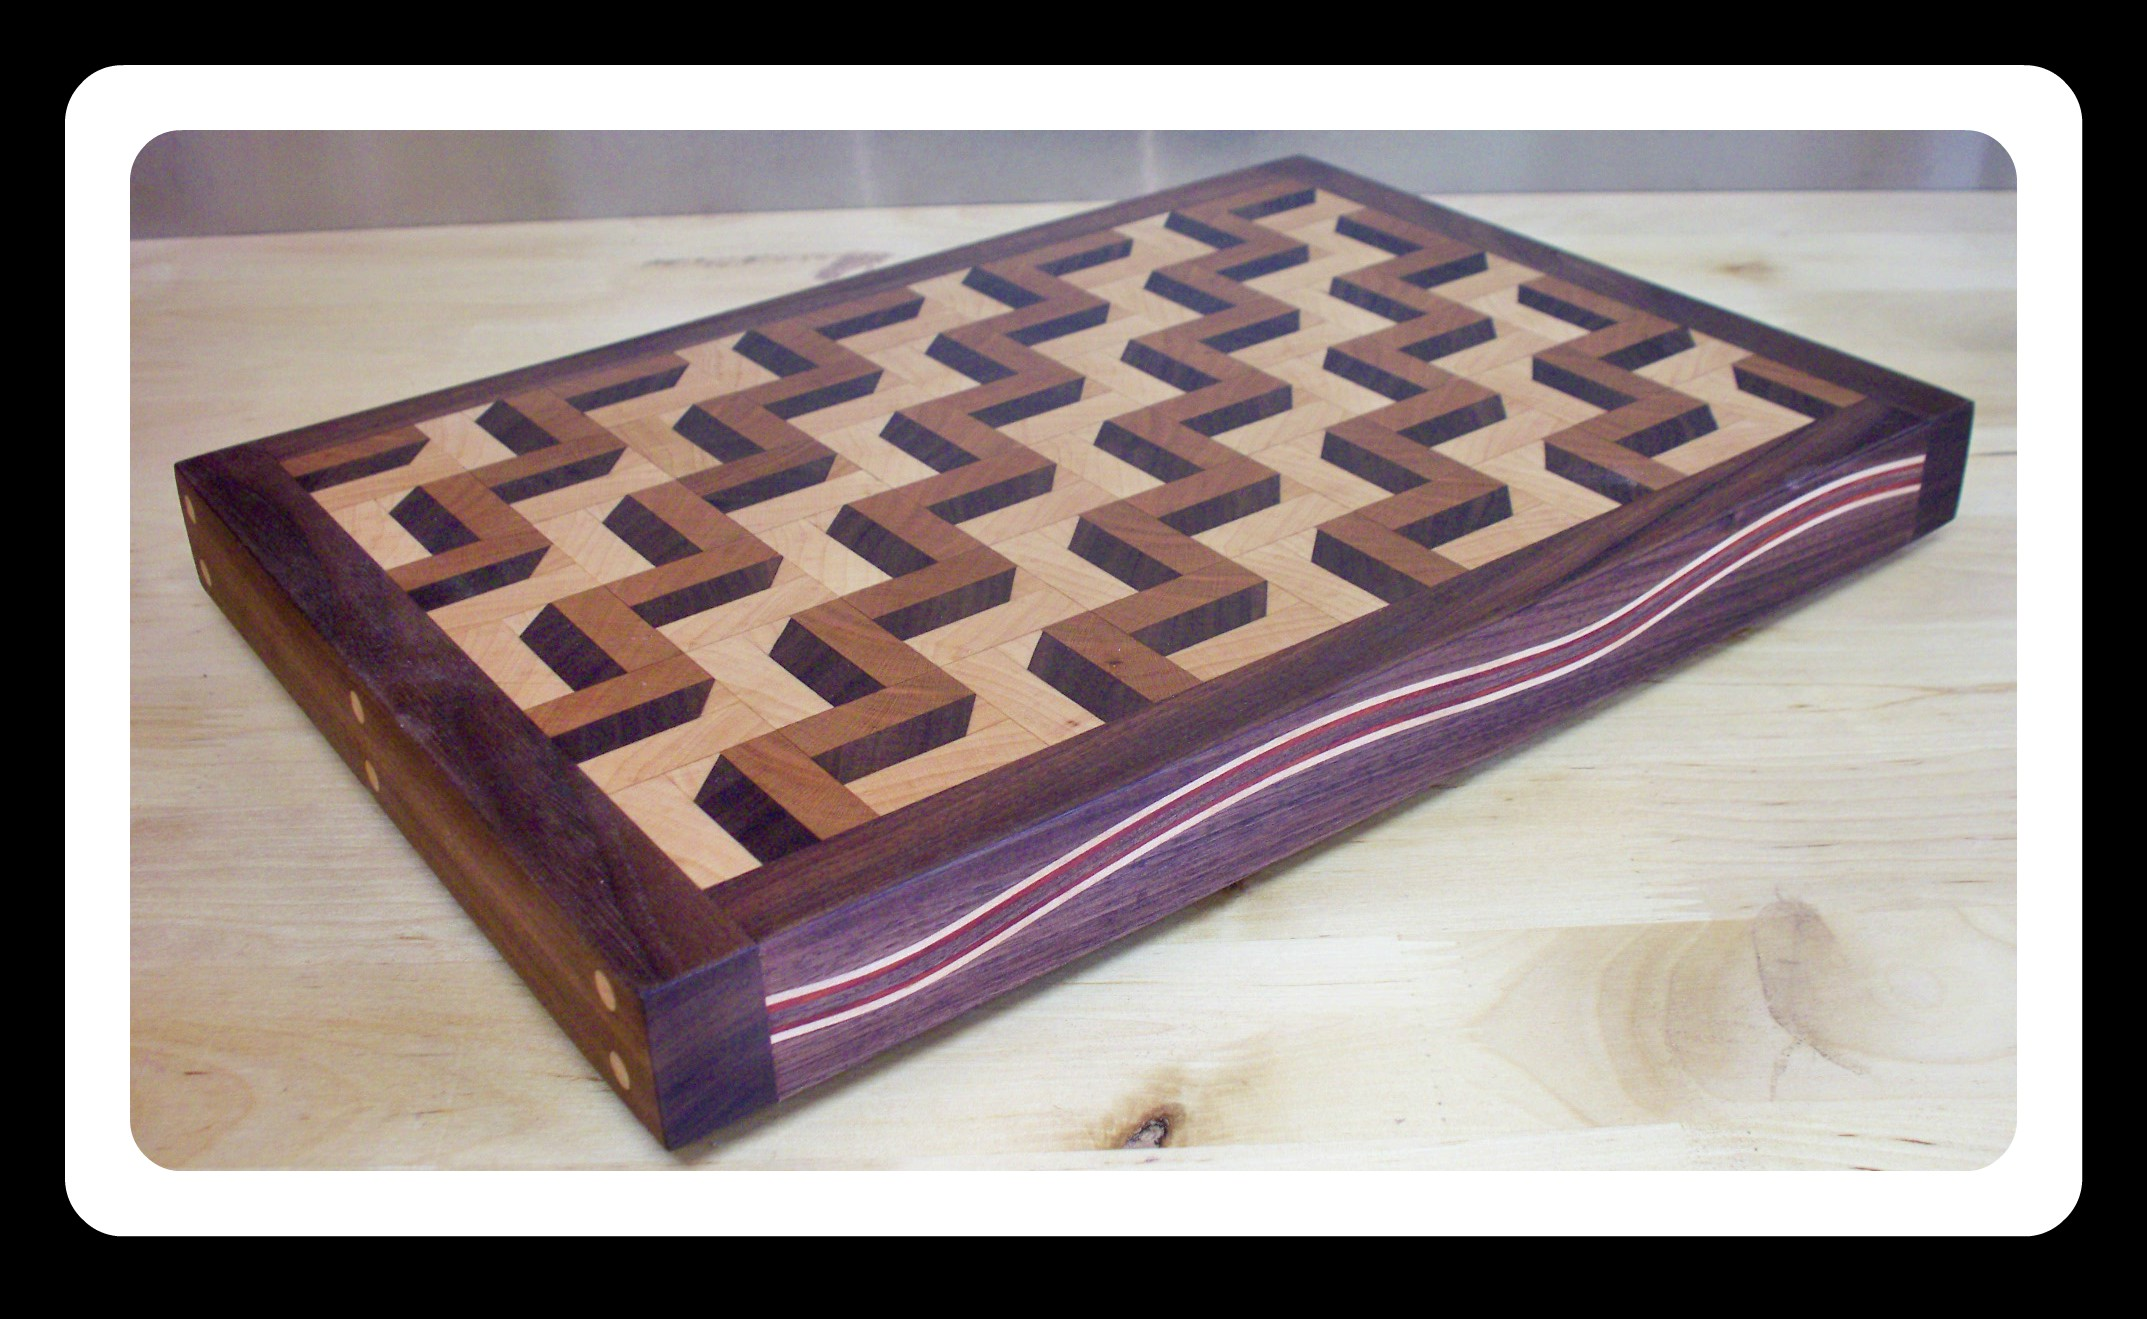 Chad Sanders - Baton Craftsman and builder of many other fine wood products including this award winning cutting board.